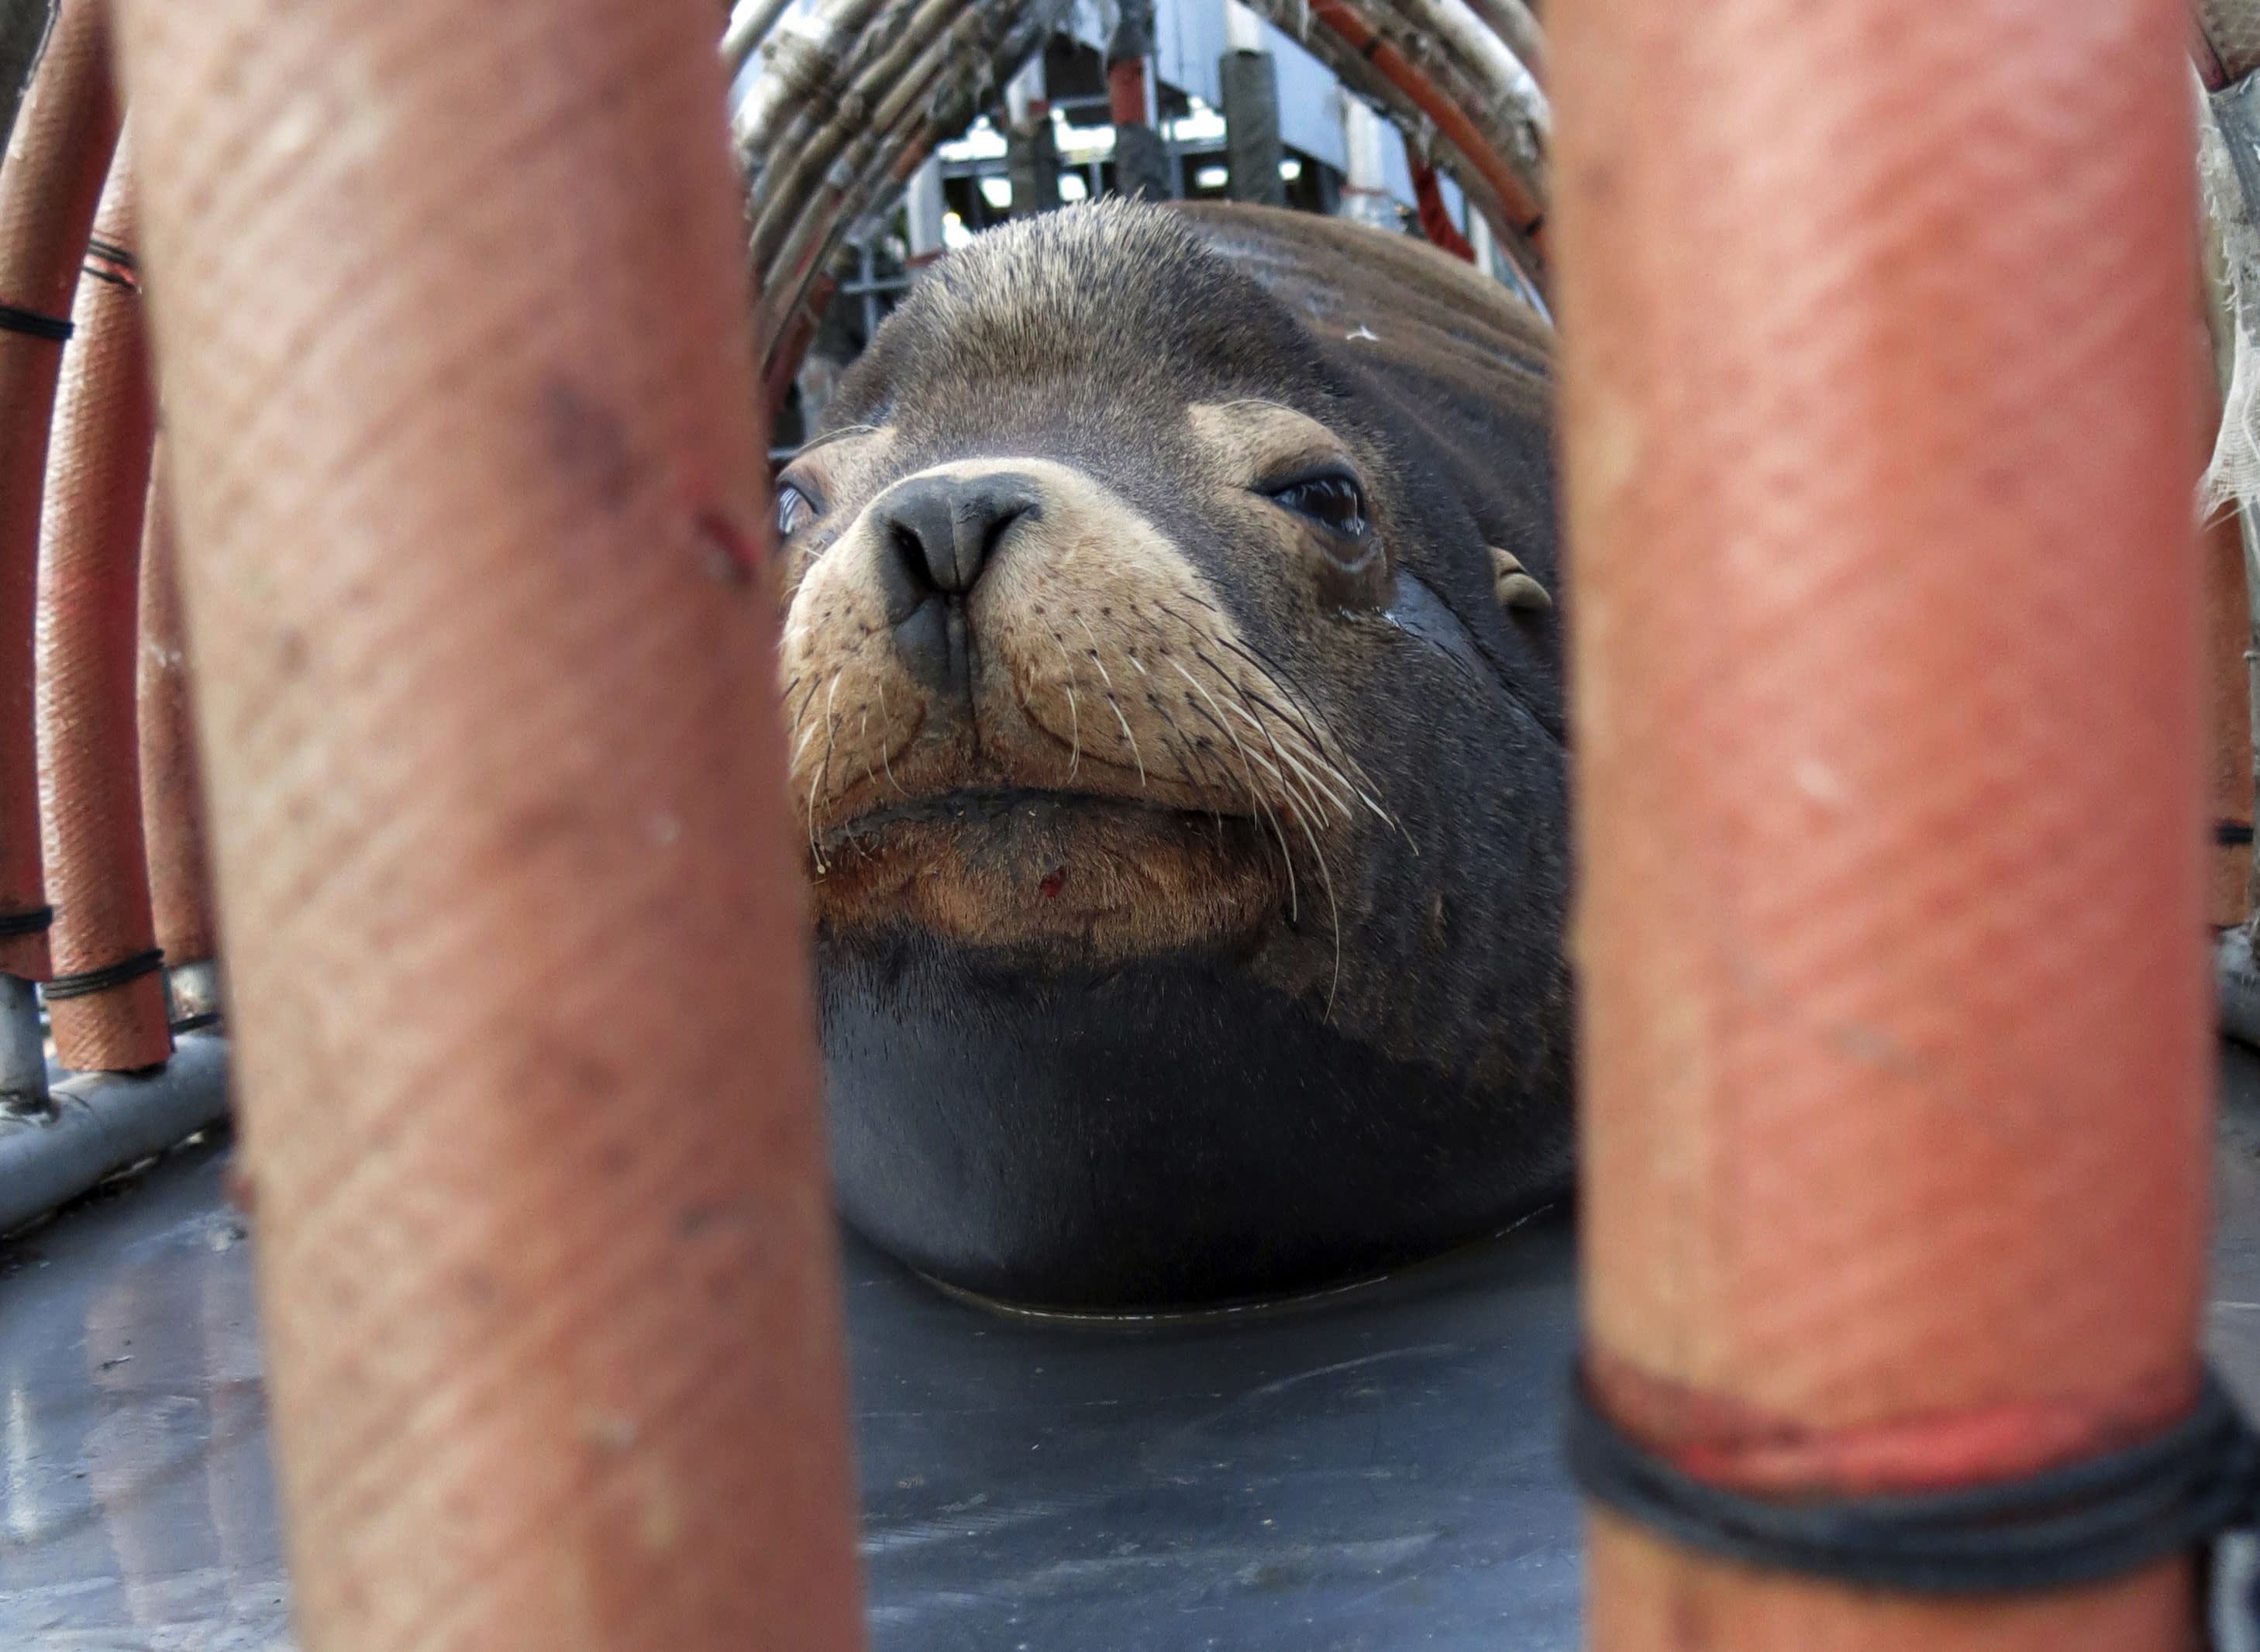 "FILE - In this March 14, 2018, file photo, a California sea lion peers out from a restraint nicknamed ""The Squeeze"" near Oregon City, Ore., as it is prepared for transport by truck to the Pacific Ocean about 130 miles away. The male sea lion was released south of Newport, Ore., in a program designed to reduce the threat to wild winter steelhead and spring chinook salmon in the Willamette River. Oregon wildlife officials have started killing sea lions that threaten a fragile run of winter steelhead in the Willamette River. The state Department of Fish and Wildlife obtained a federal permit in November to kill up to 93 California sea lions per year below Willamette Falls south of Portland, Oregon Public Broadcasting reported Wednesday, Jan. 9, 2019. (AP Photo/Gillian Flaccus, File)"